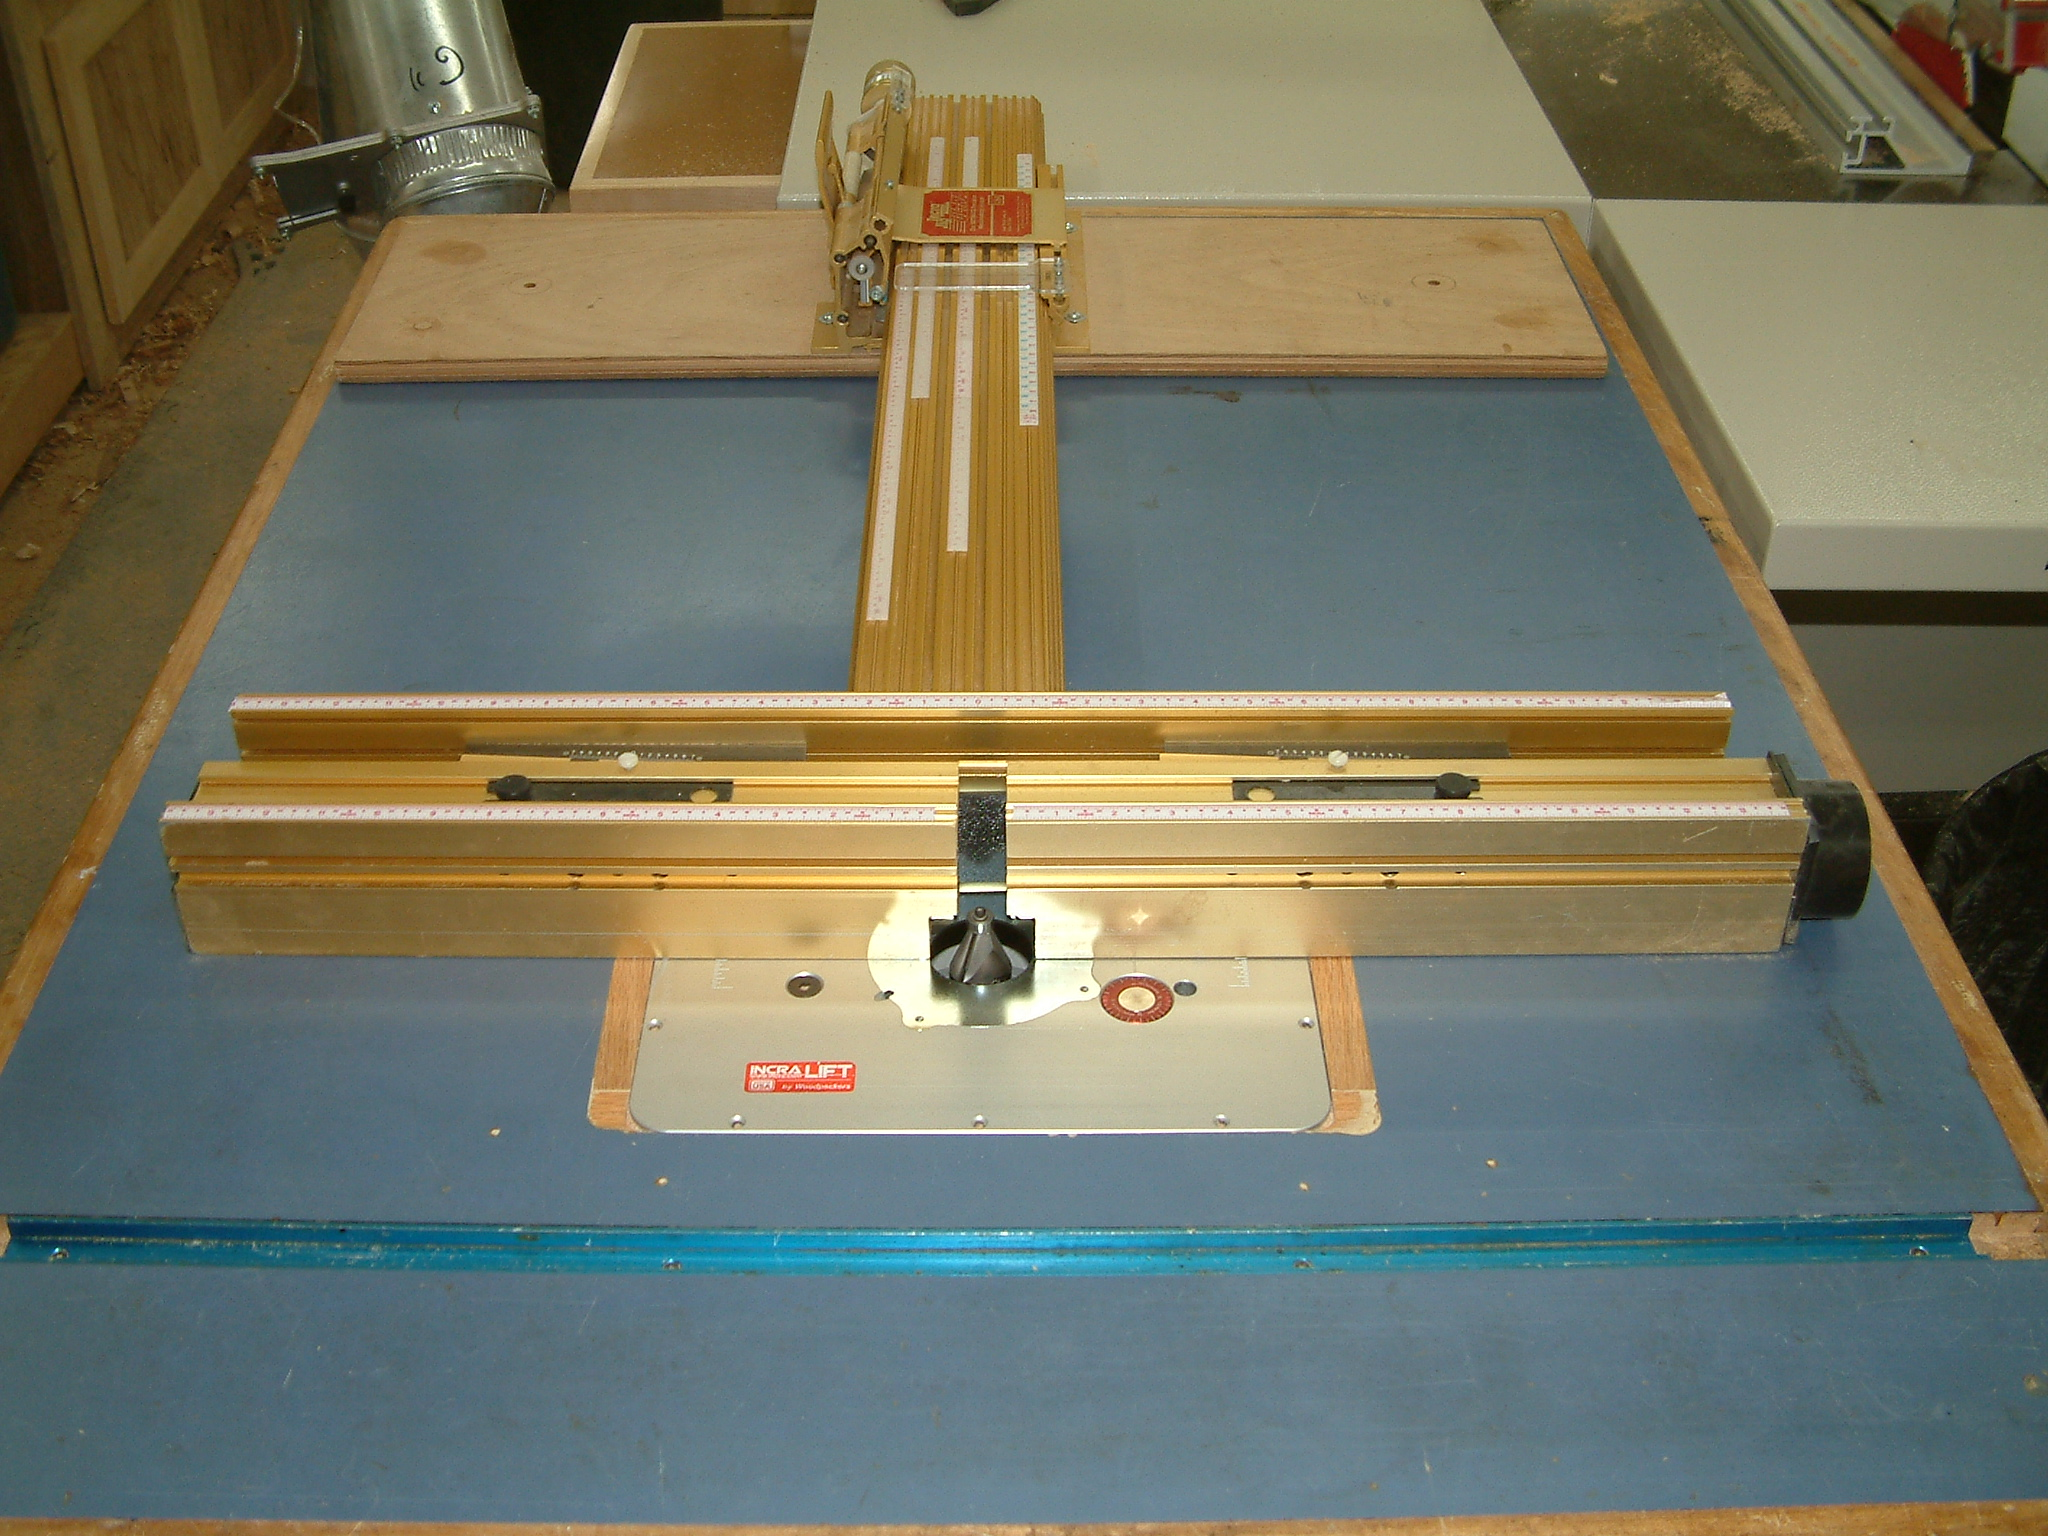 Incra Ultra Fence on Router Table